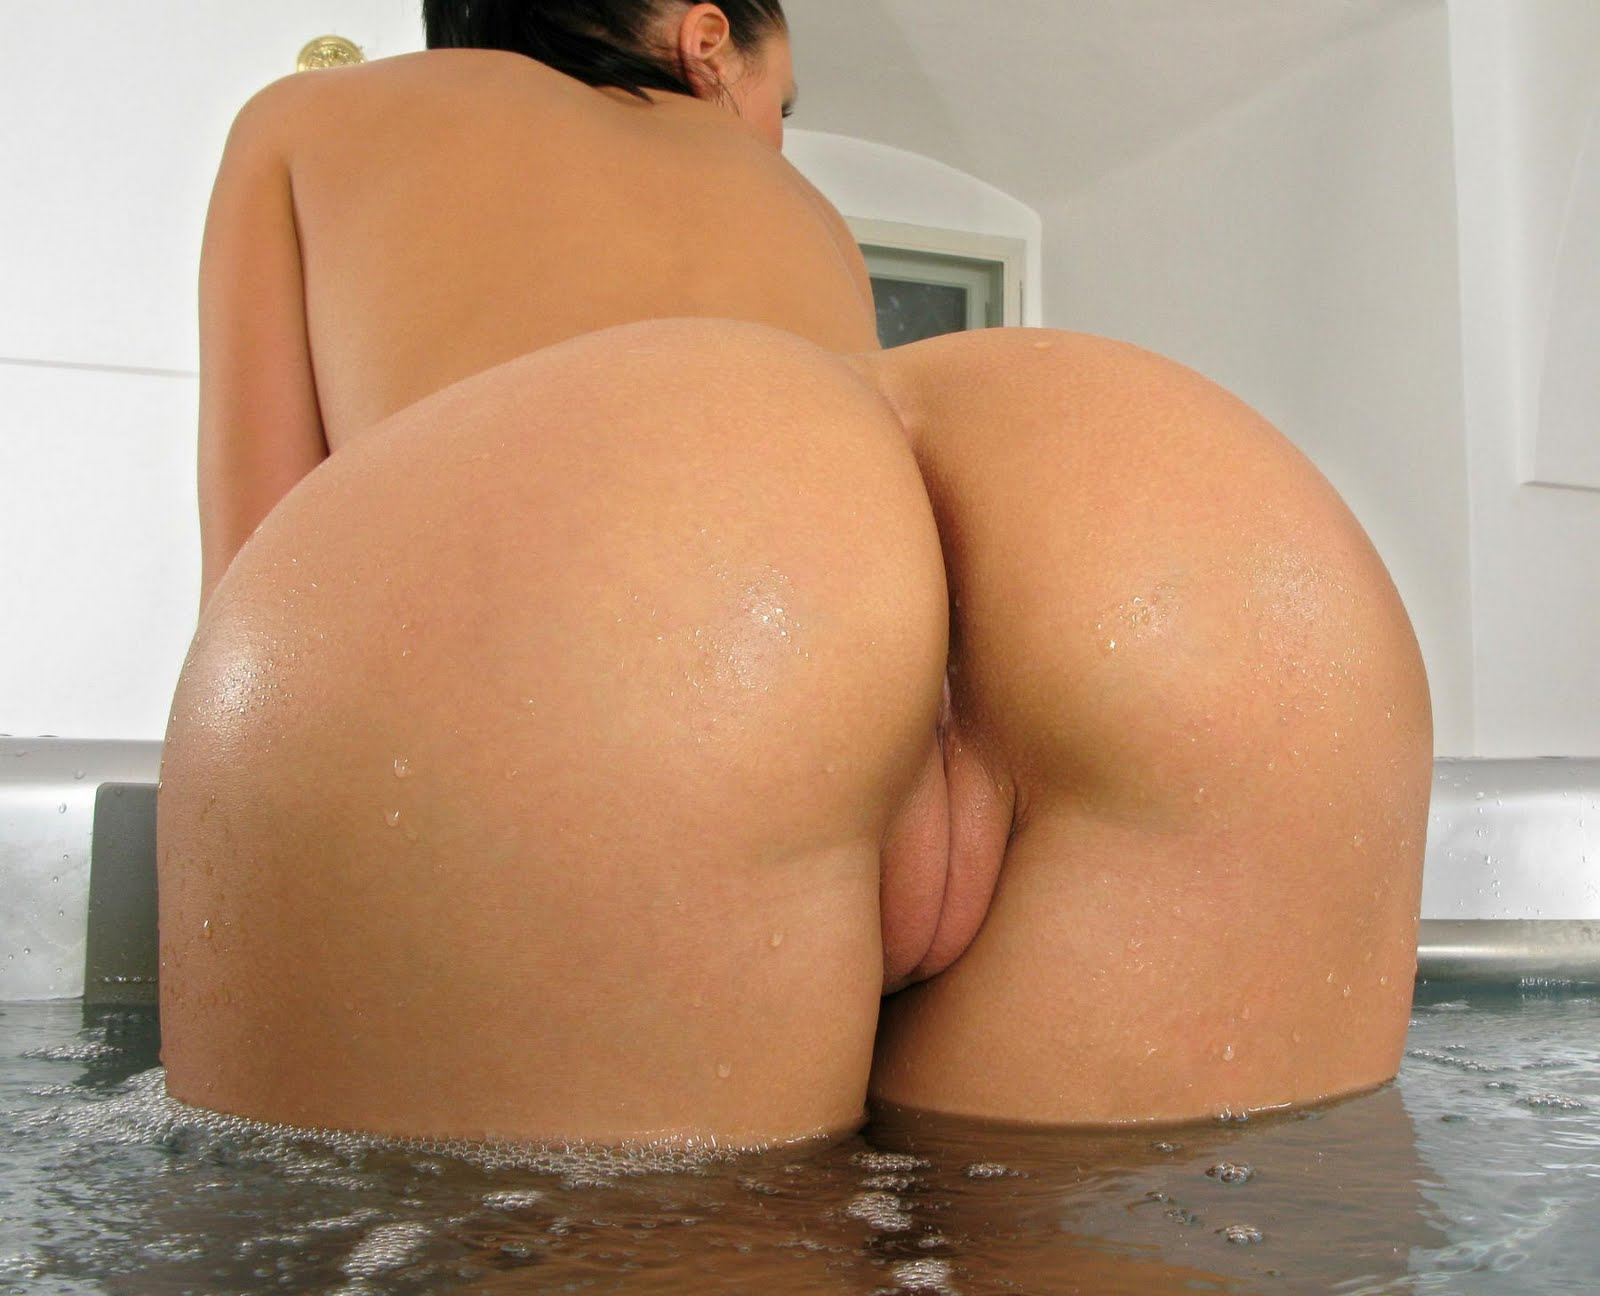 Huge ass hd porn